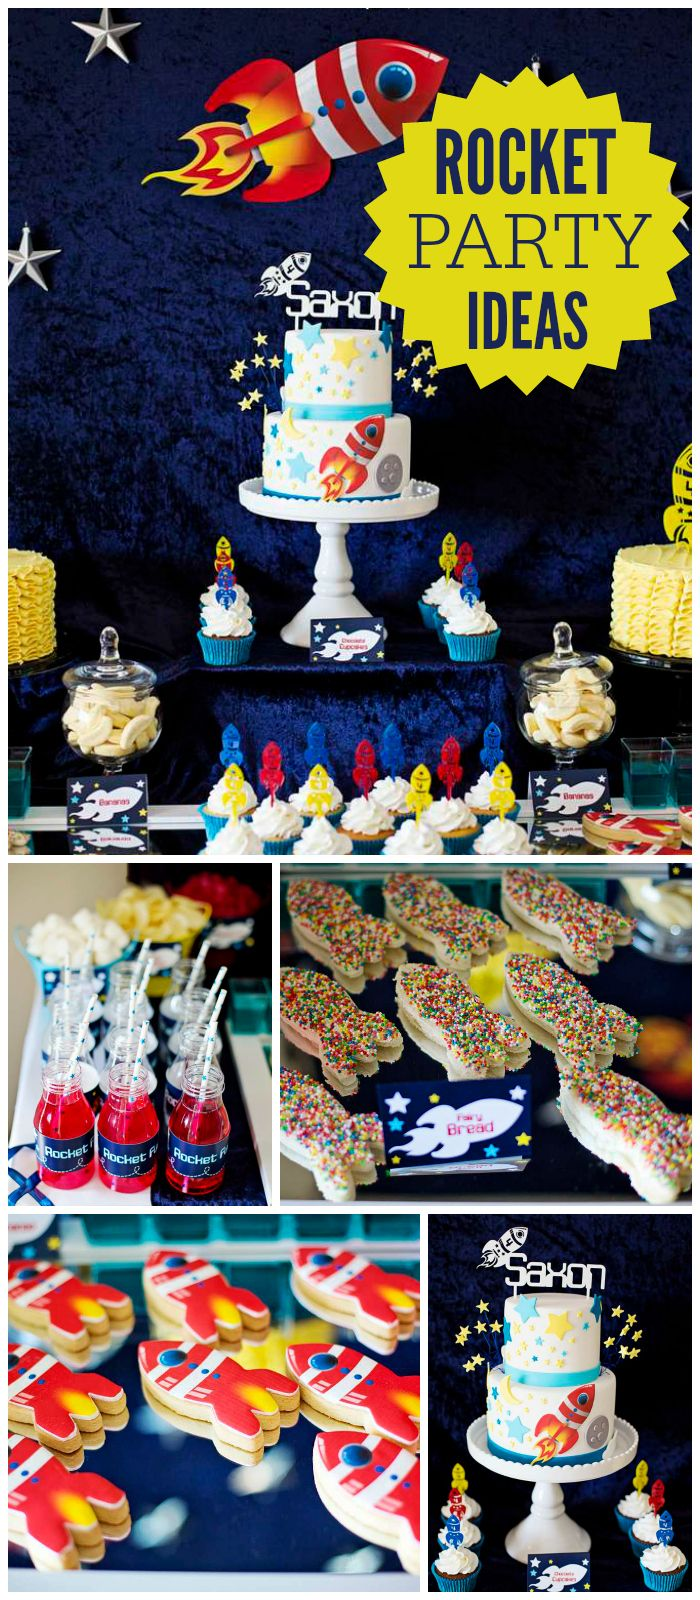 Check Out This Awesome Outer Space Rocket Birthday Party With Fairy Bread And An Amazing Cake See More Planning Ideas At CatchMyParty